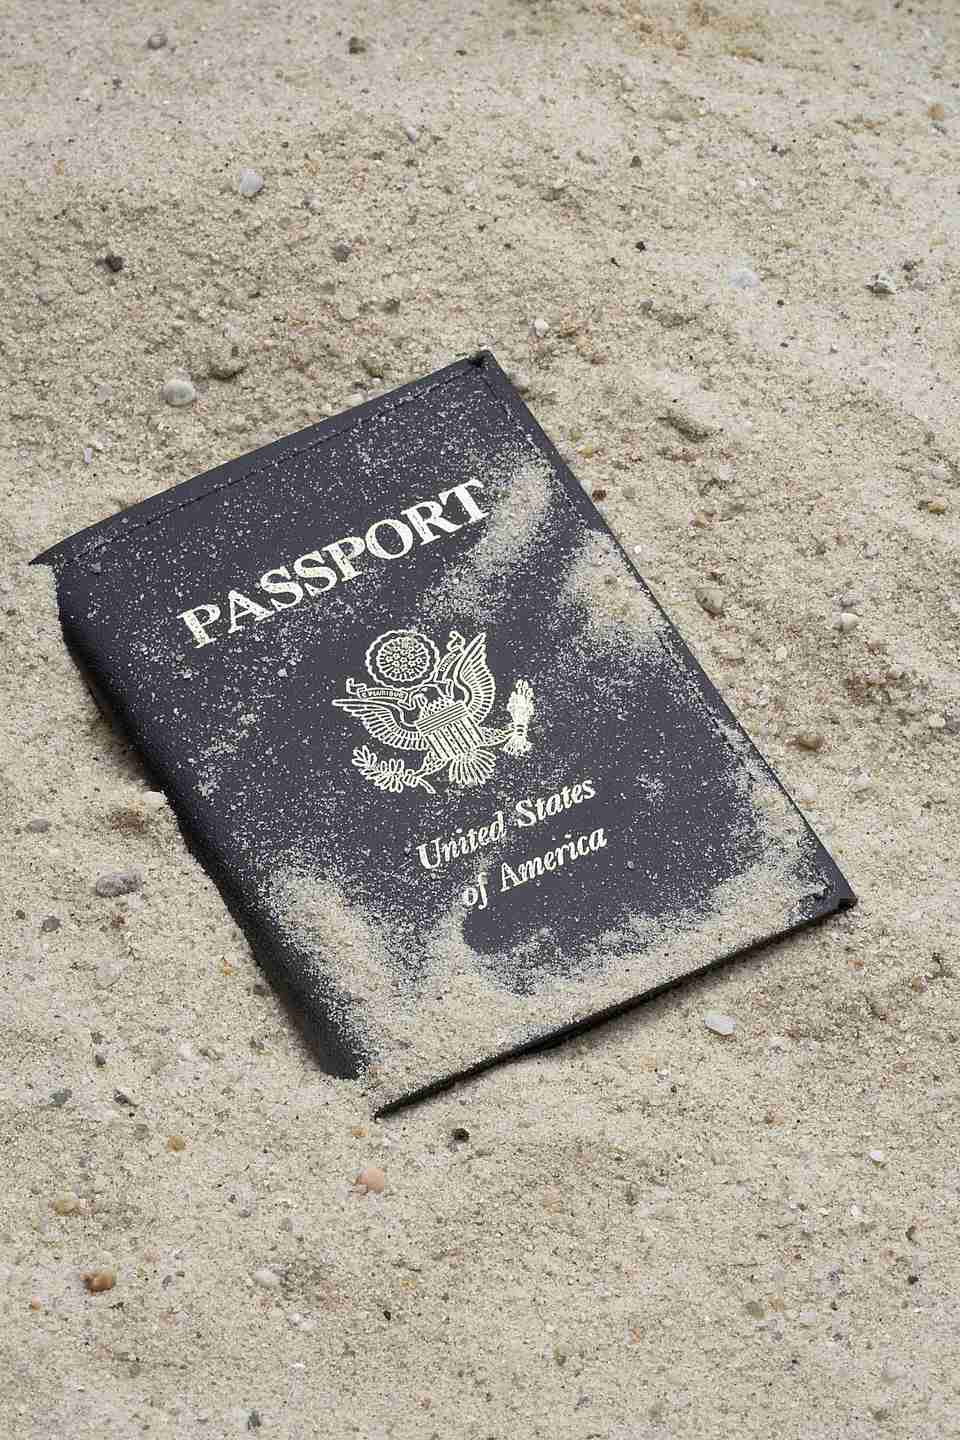 Did your passport get lost or stolen? Here's what you need to get it back again.